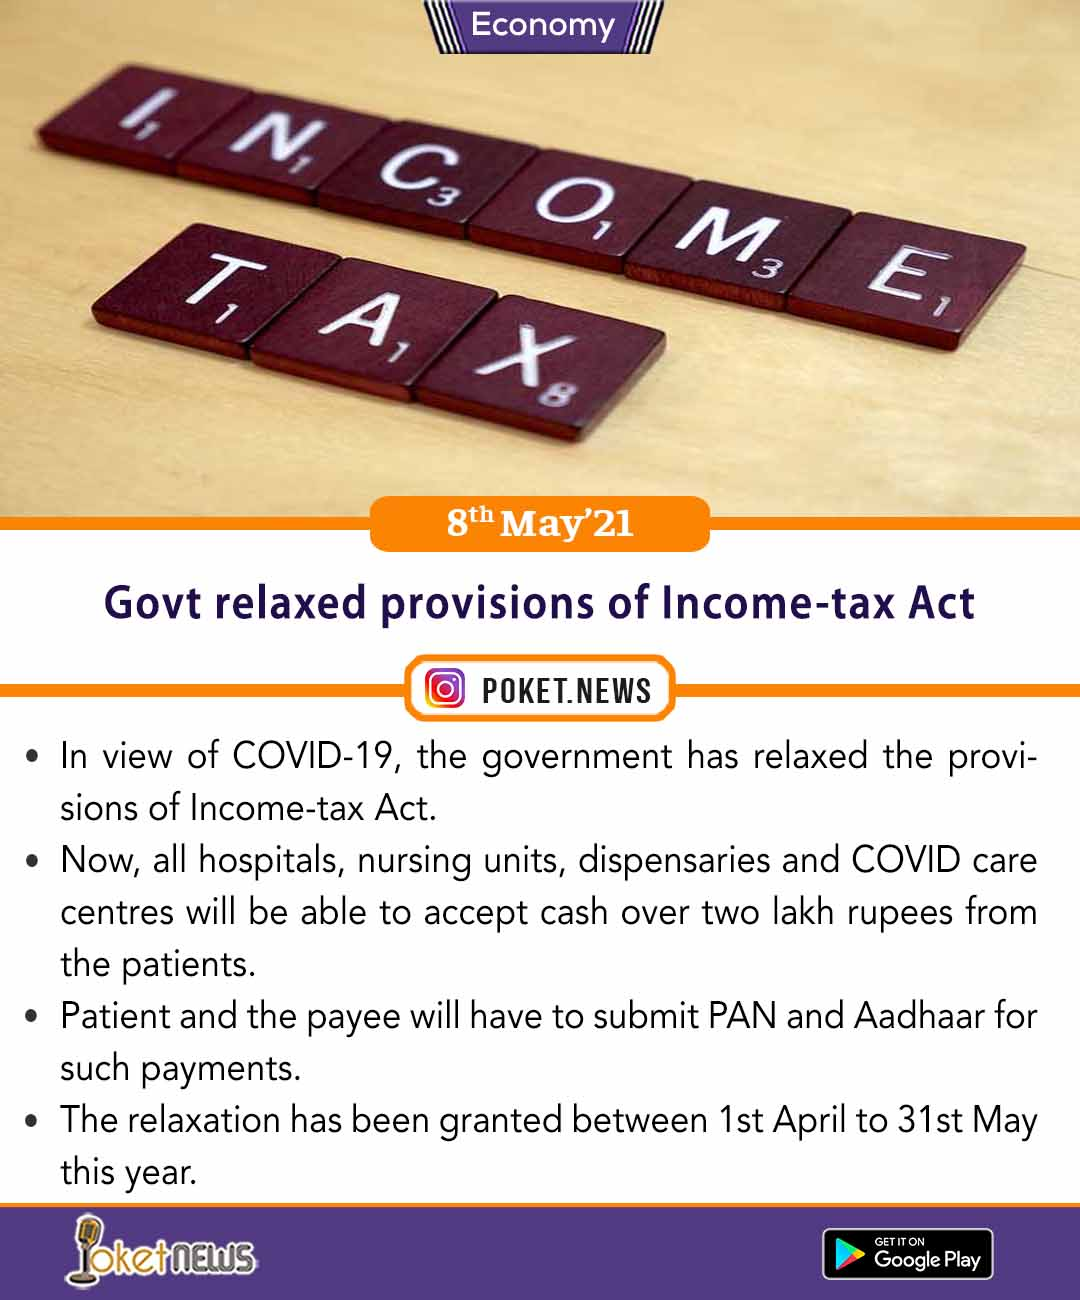 Govt relaxed provisions of Income-tax Act